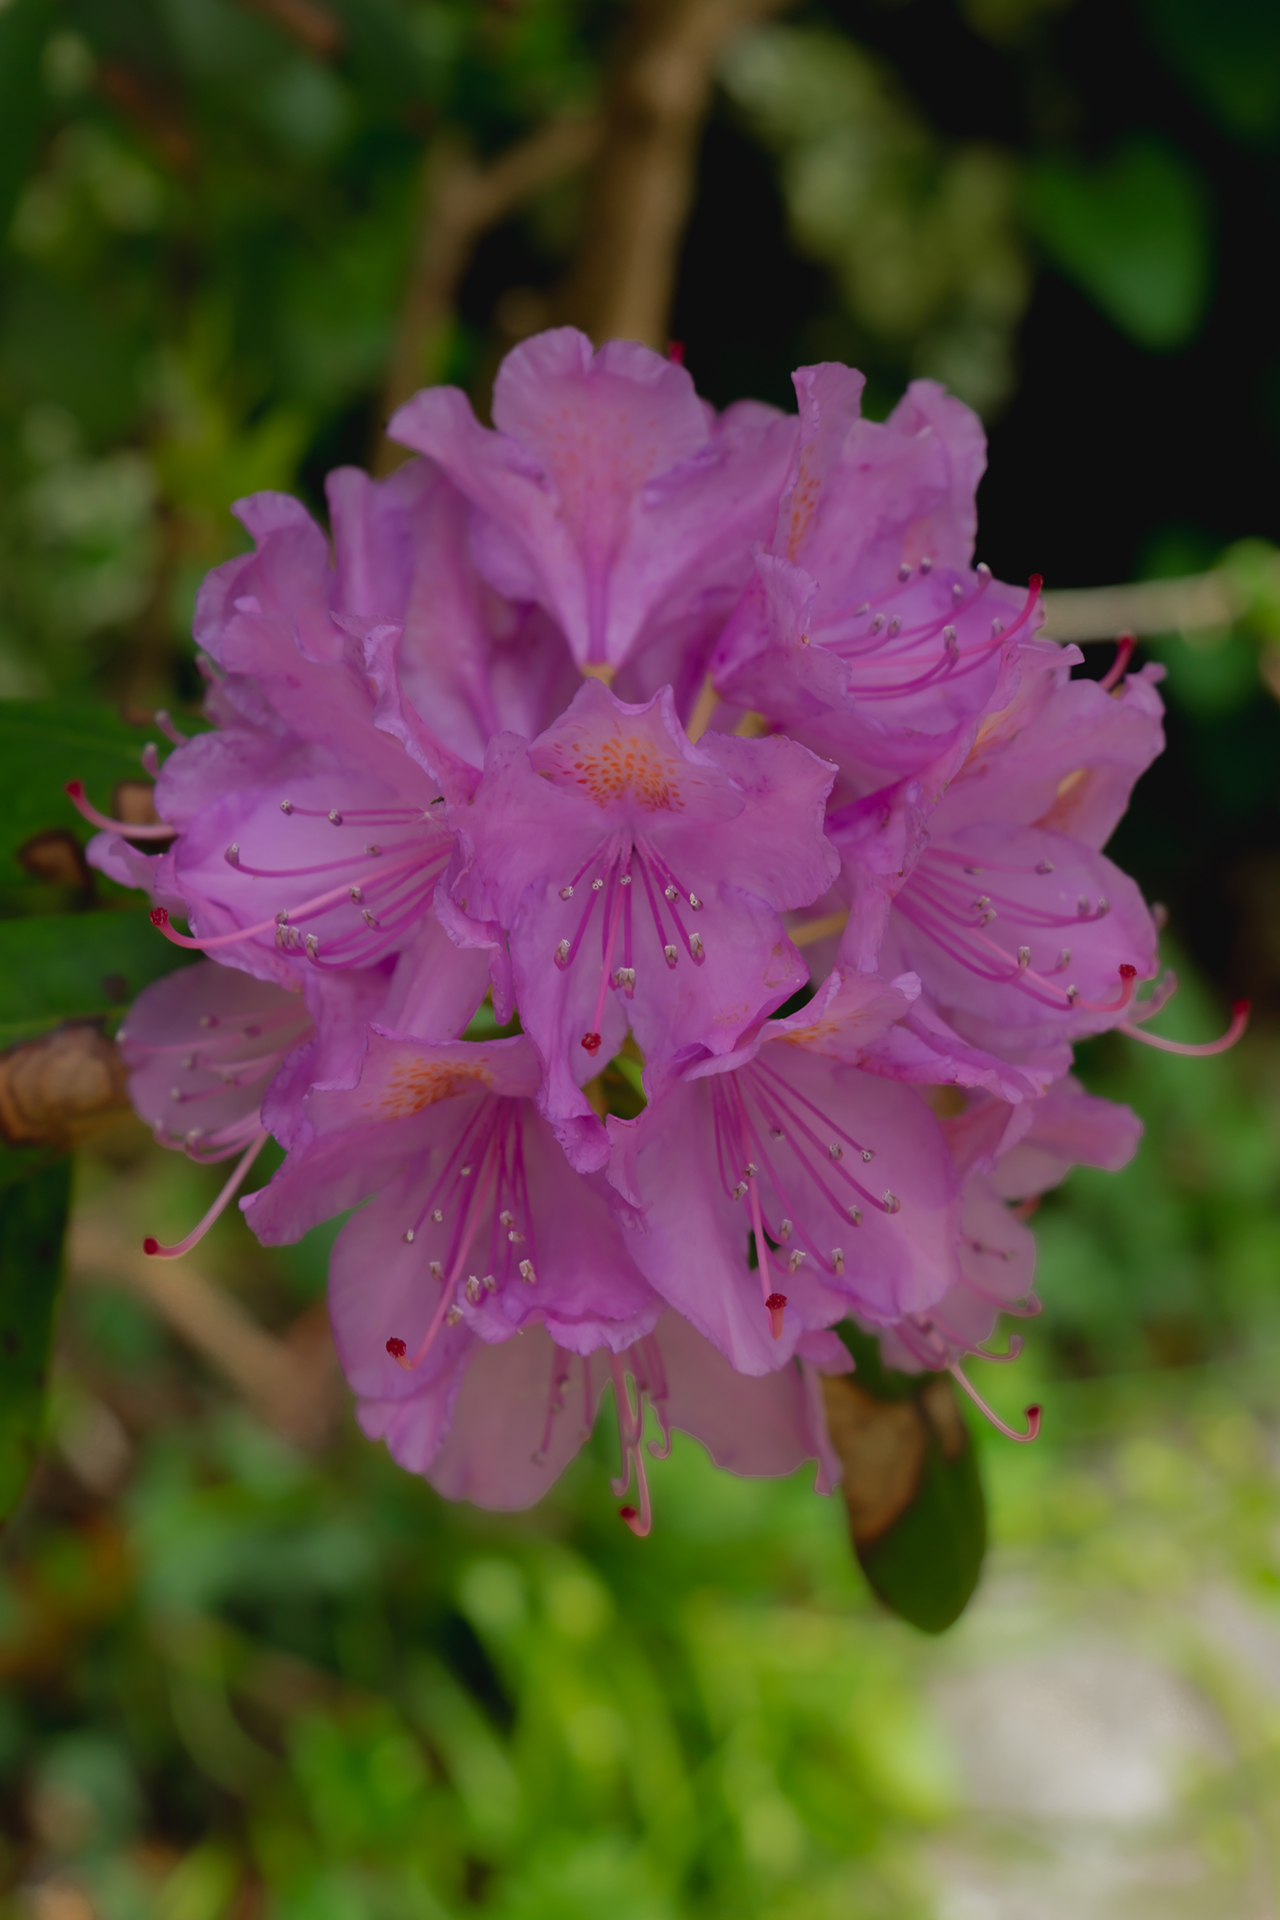 Rhododendron flowers (1 of 1)